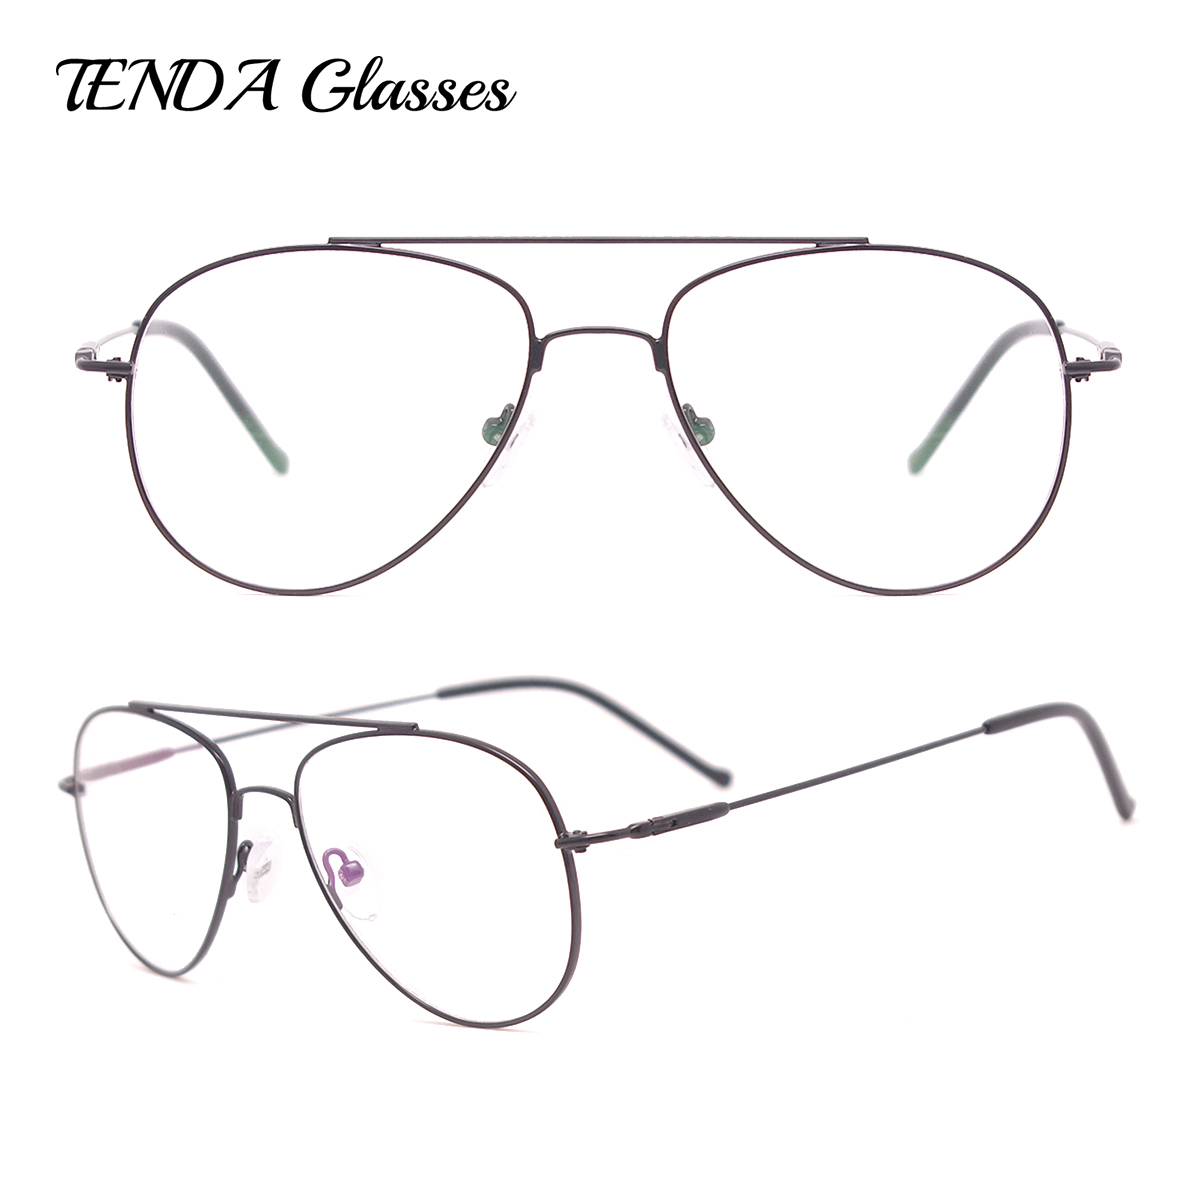 TendaGlasses Metal Full Rim Small Pilot Eyeglass Frames Mænd Briller Til Prescription Myopi Multifocal Solbriller Objektiver